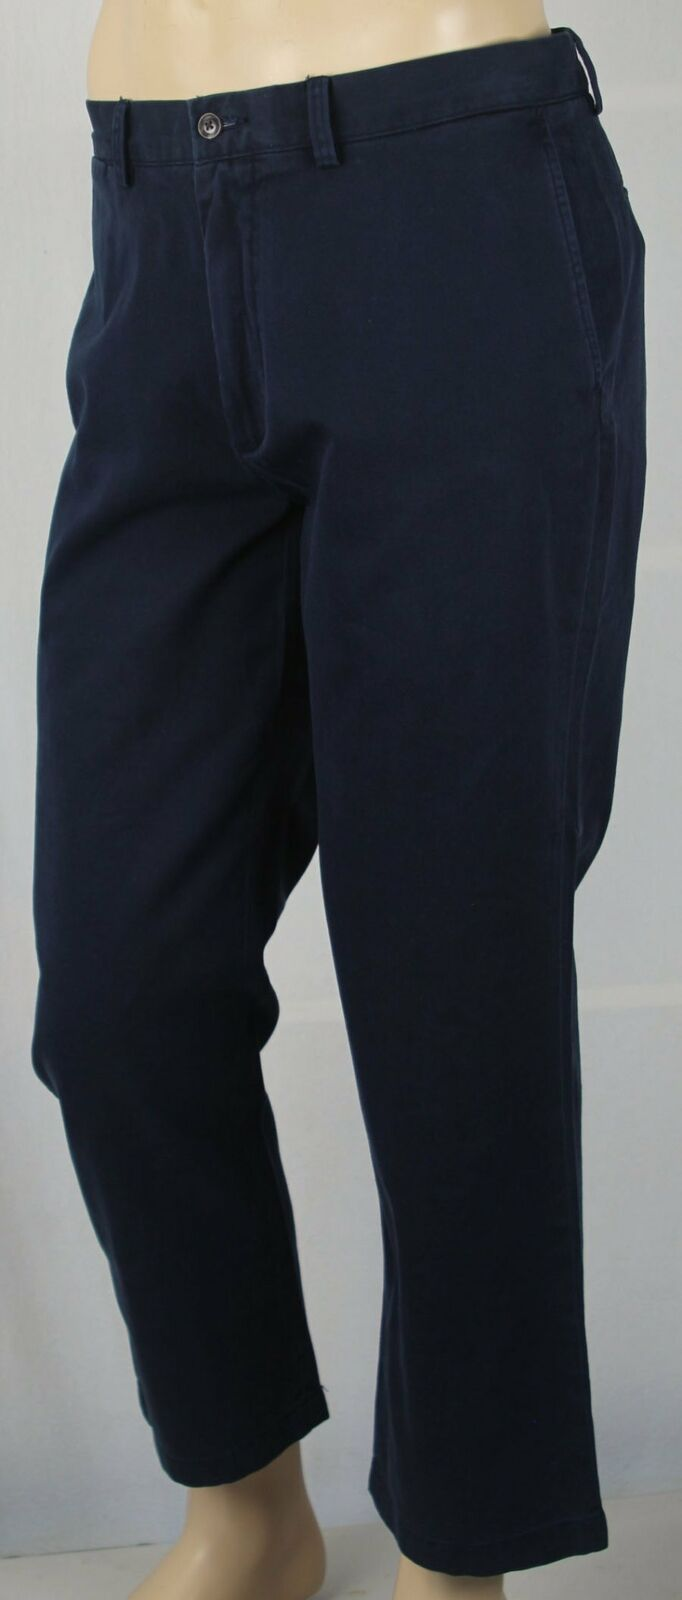 Polo Ralph Lauren Navy bluee Classic Fit Flat Front Pants NWT